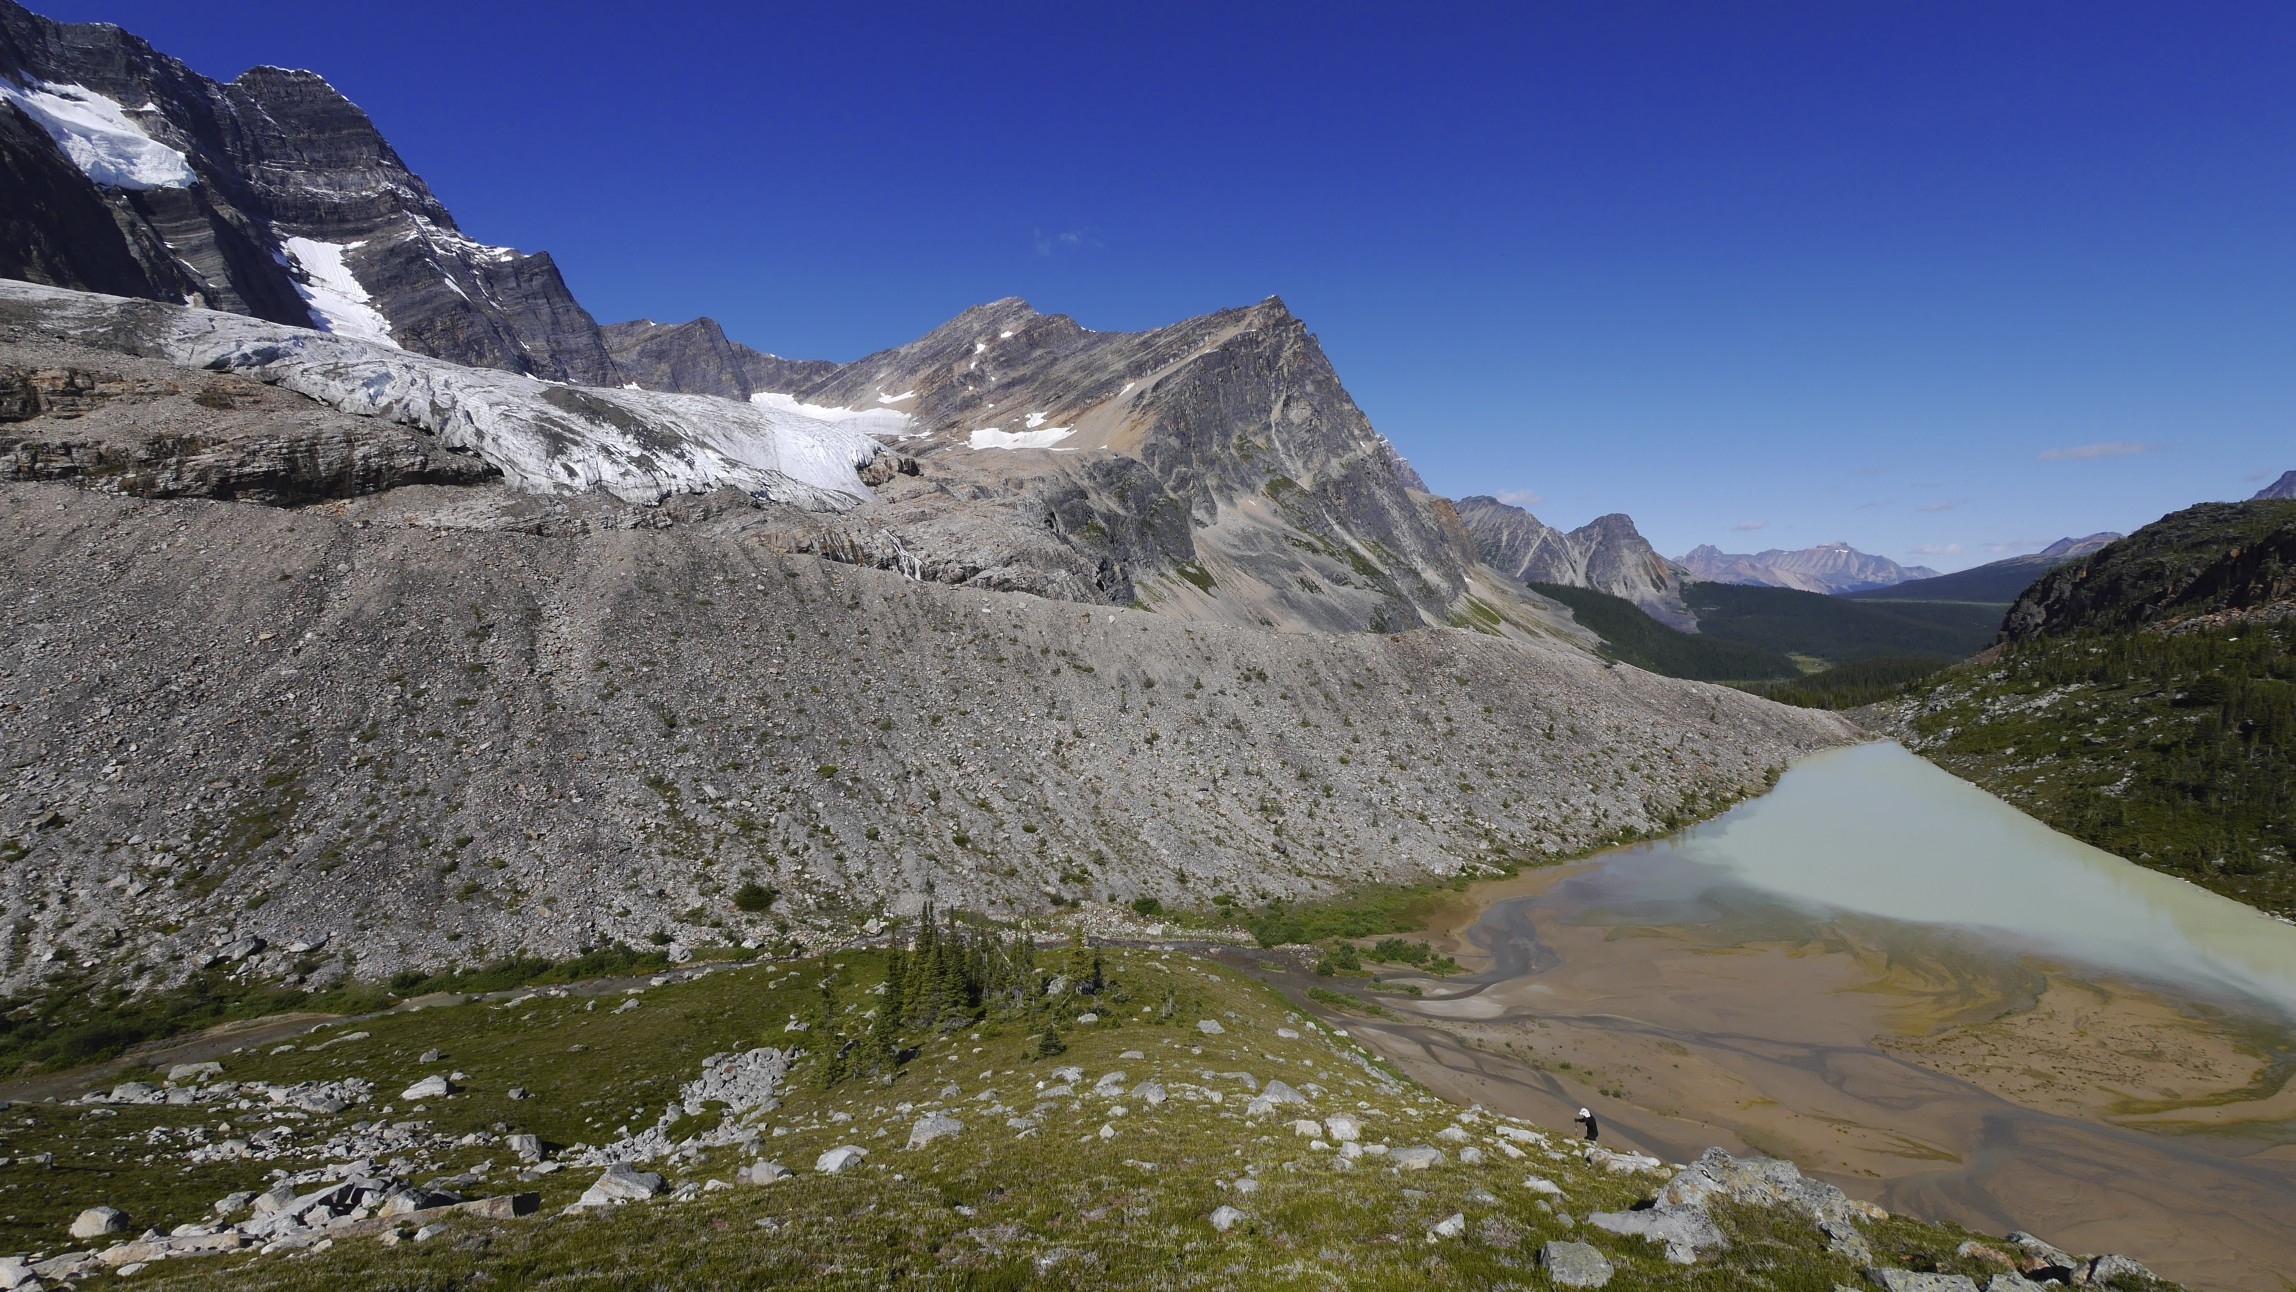 Eremite Valley and the Arrowhead Lake